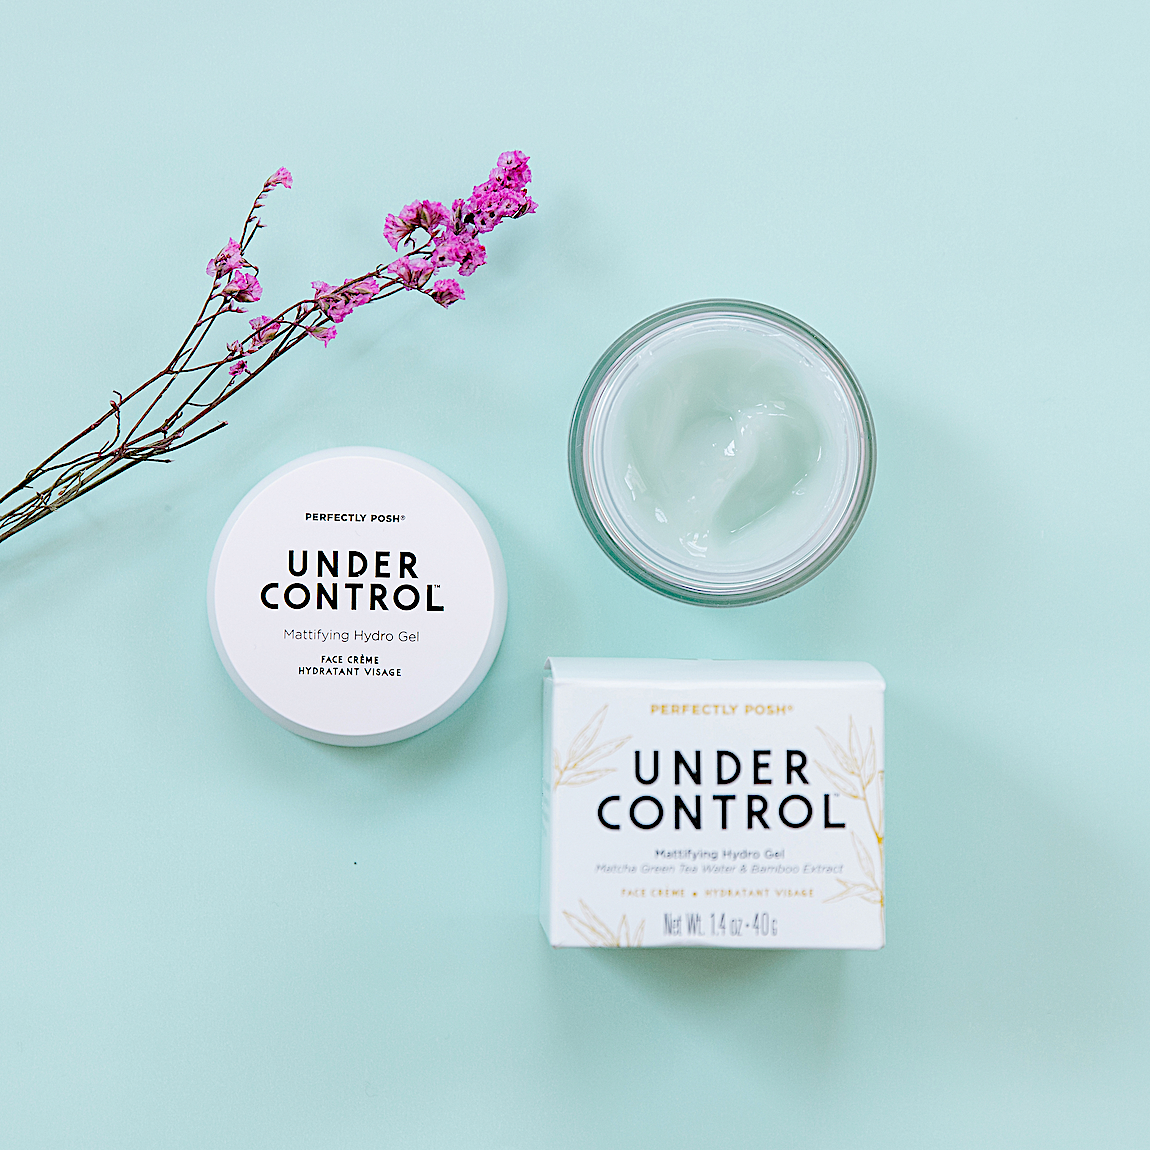 Perfectly Posh Under Control Mattifying Hydro Gel Cream jelly-cream moisturizer for oily skin